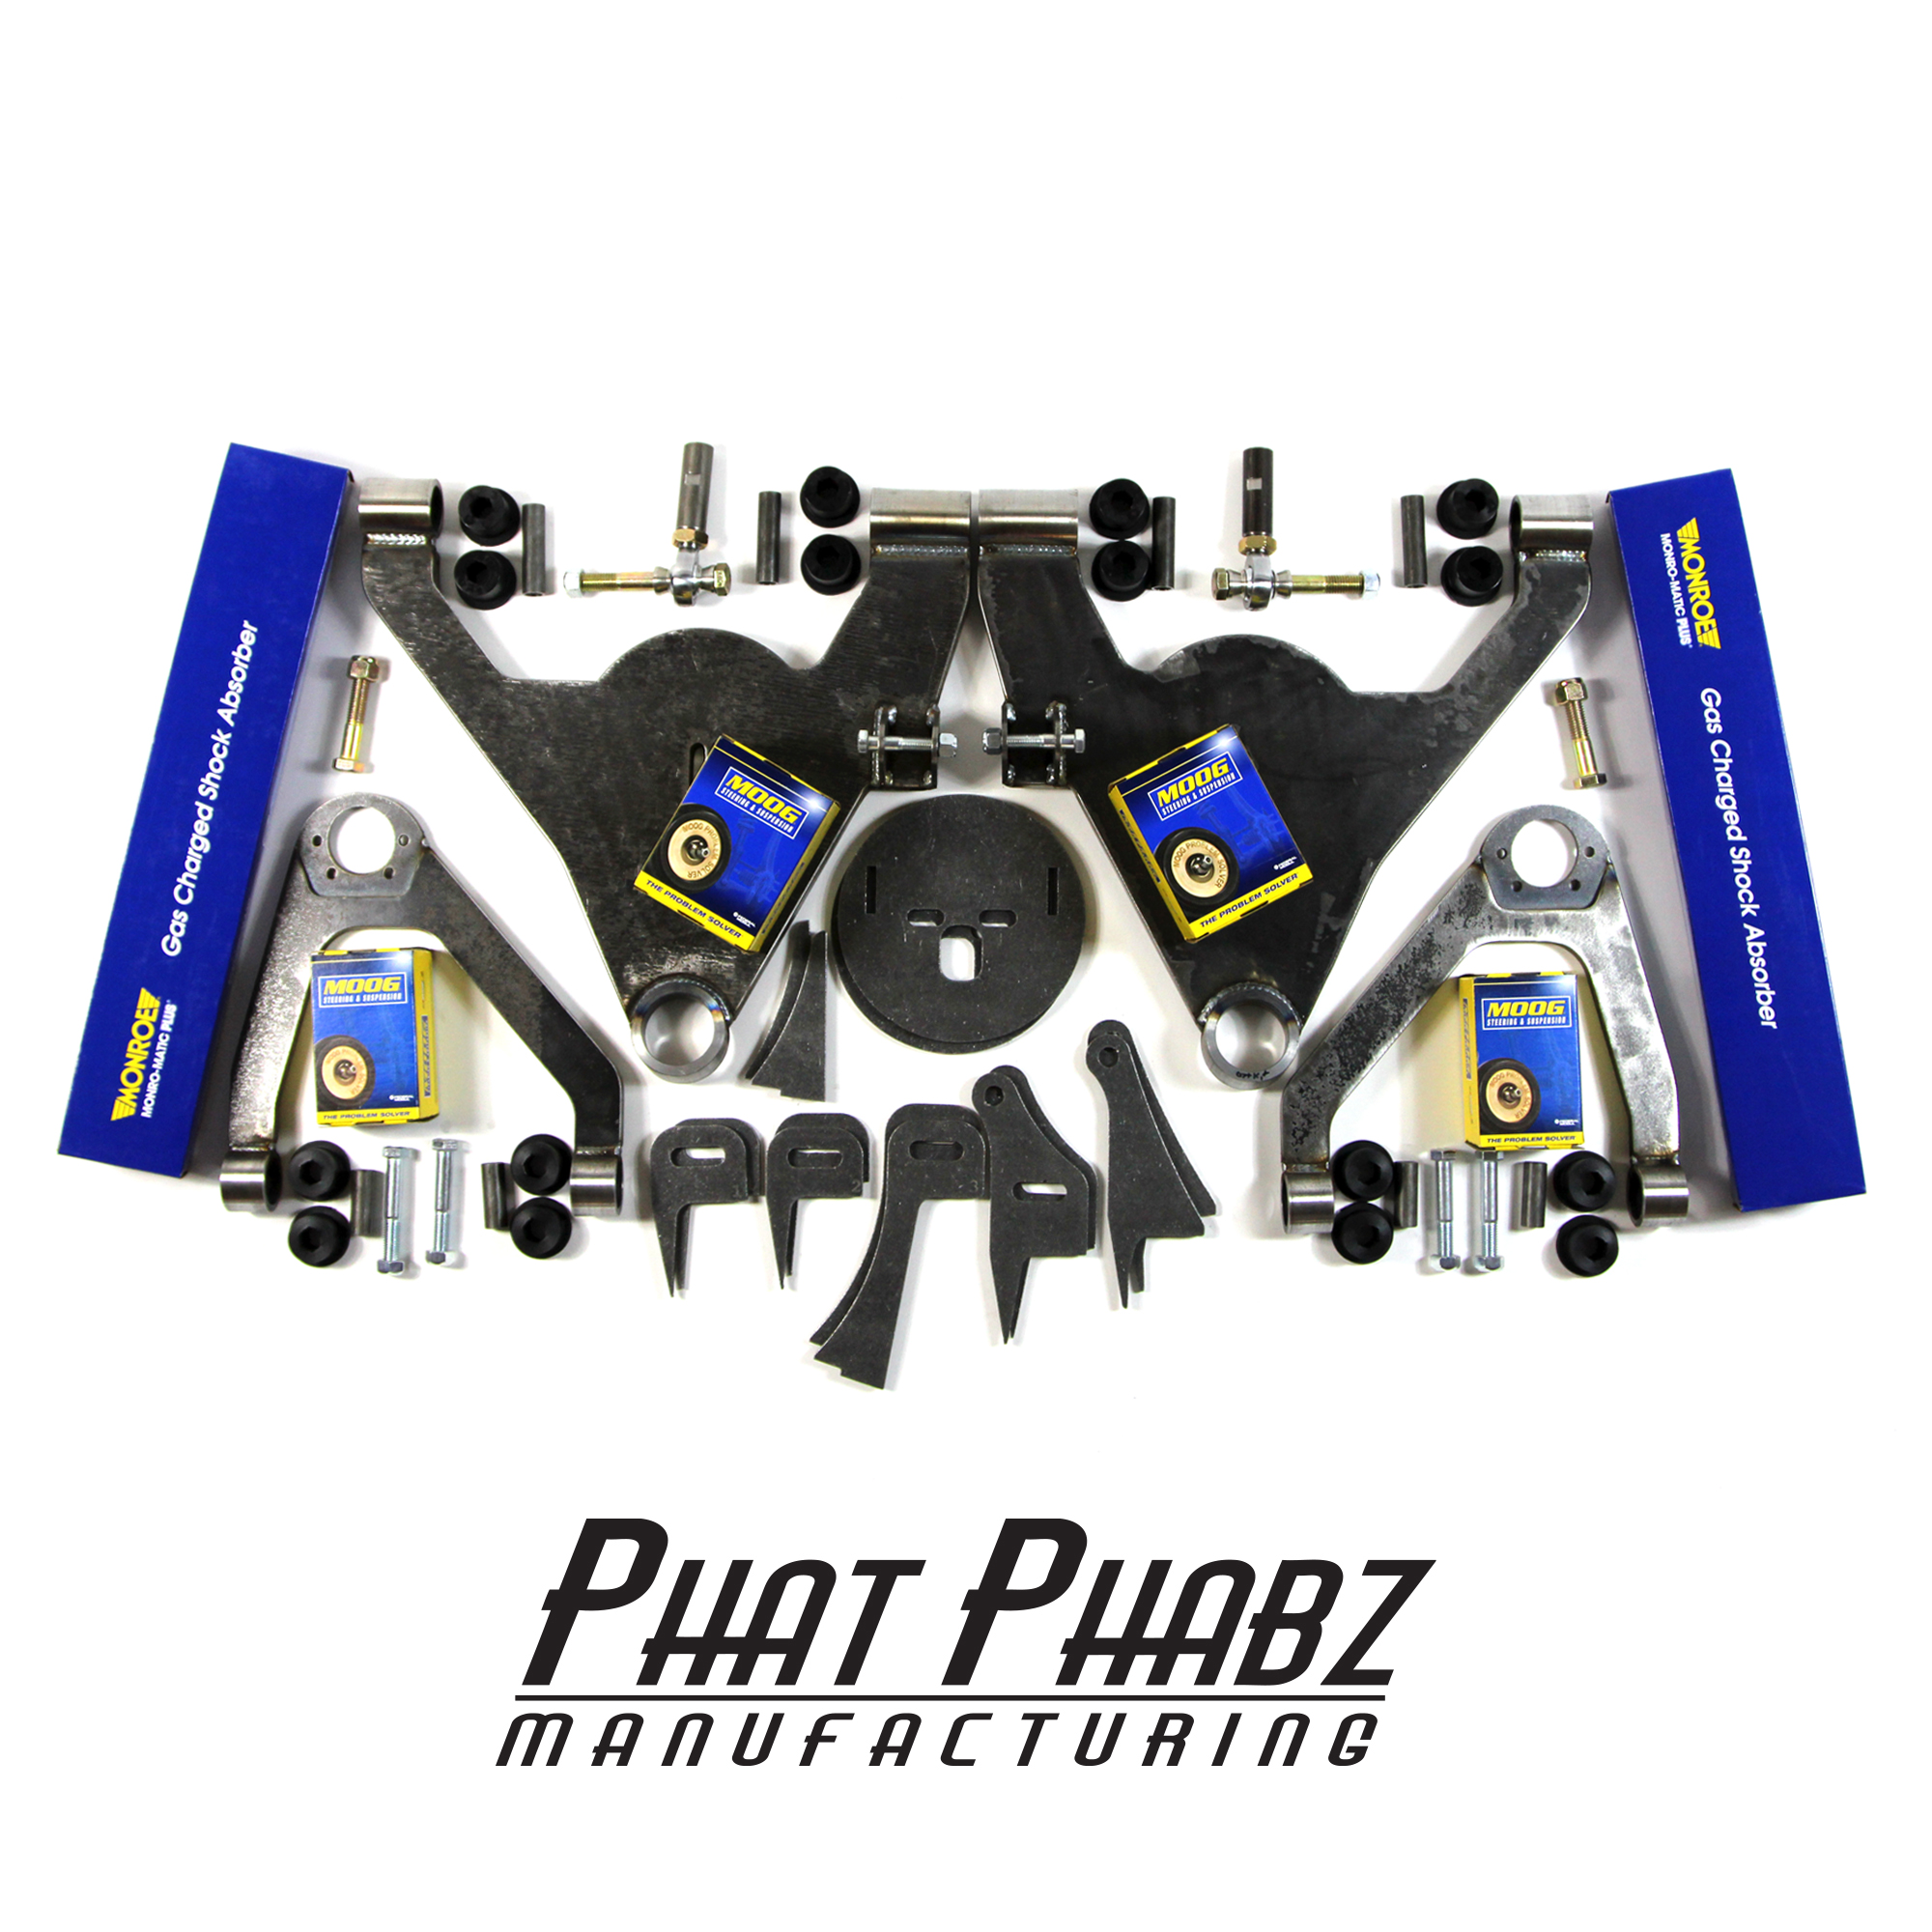 "PHA 1002 Phat Phabz 07'- 16' Silverado/Sierra Front Kit Features a 1"" Narrowed Track Width, Moog Ball Joints, Monroe Shocks, W/ Steering Kit with 3/4"" Chromoly Heims. ** Will lay 22""-28"" wheels ** ** price includes $100 spindle core charge **"